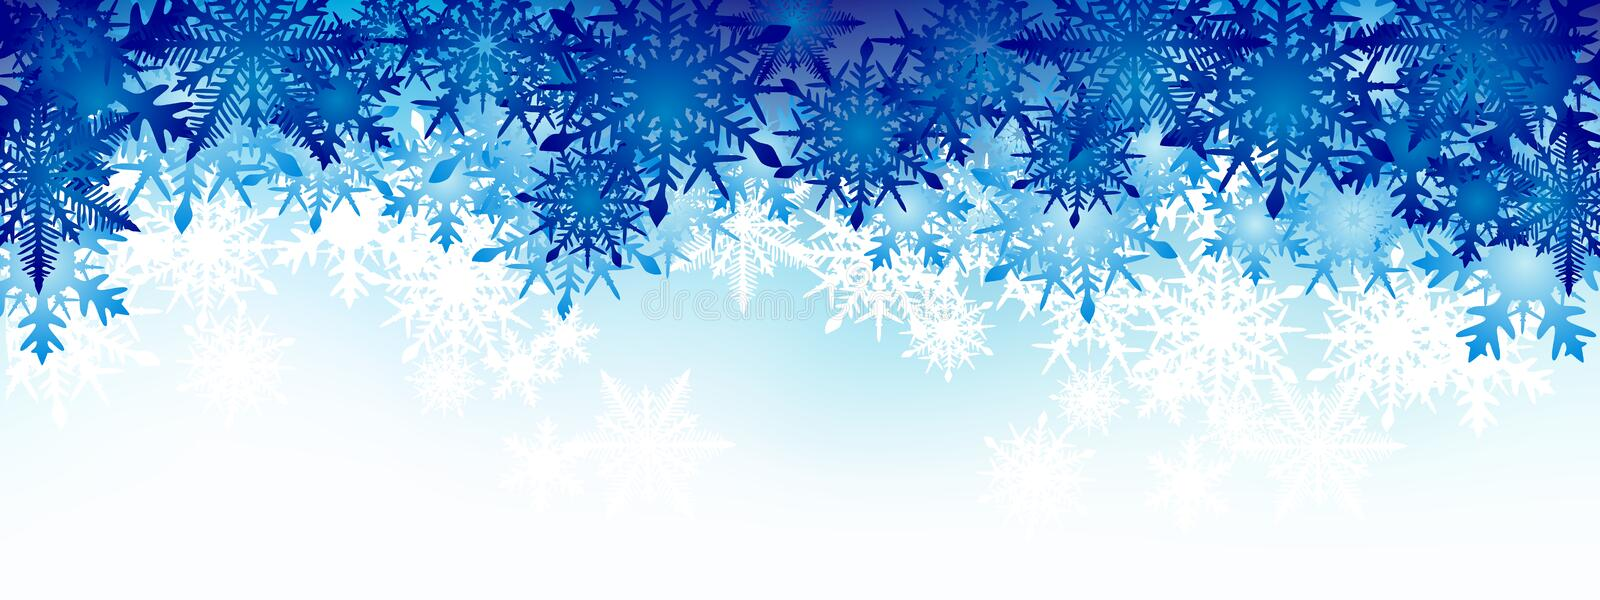 Winter background, snowflakes - vector illustration. Winter background, snowflakes - 2d vector illustration cold blue vector illustration